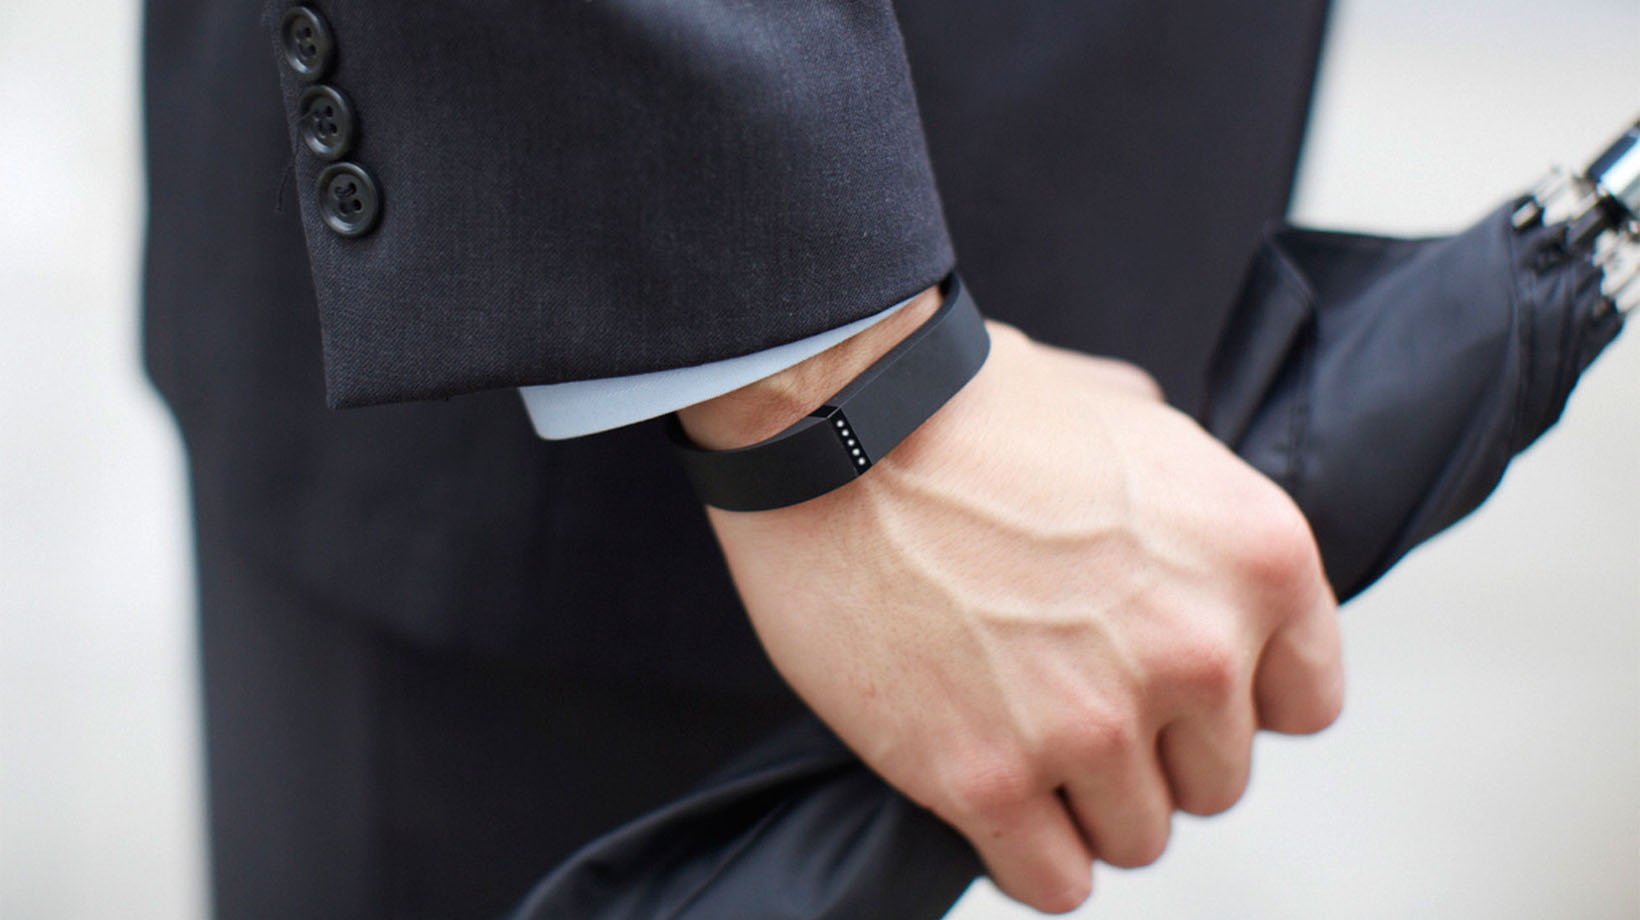 close up picture of a fitbit on a man's wrist